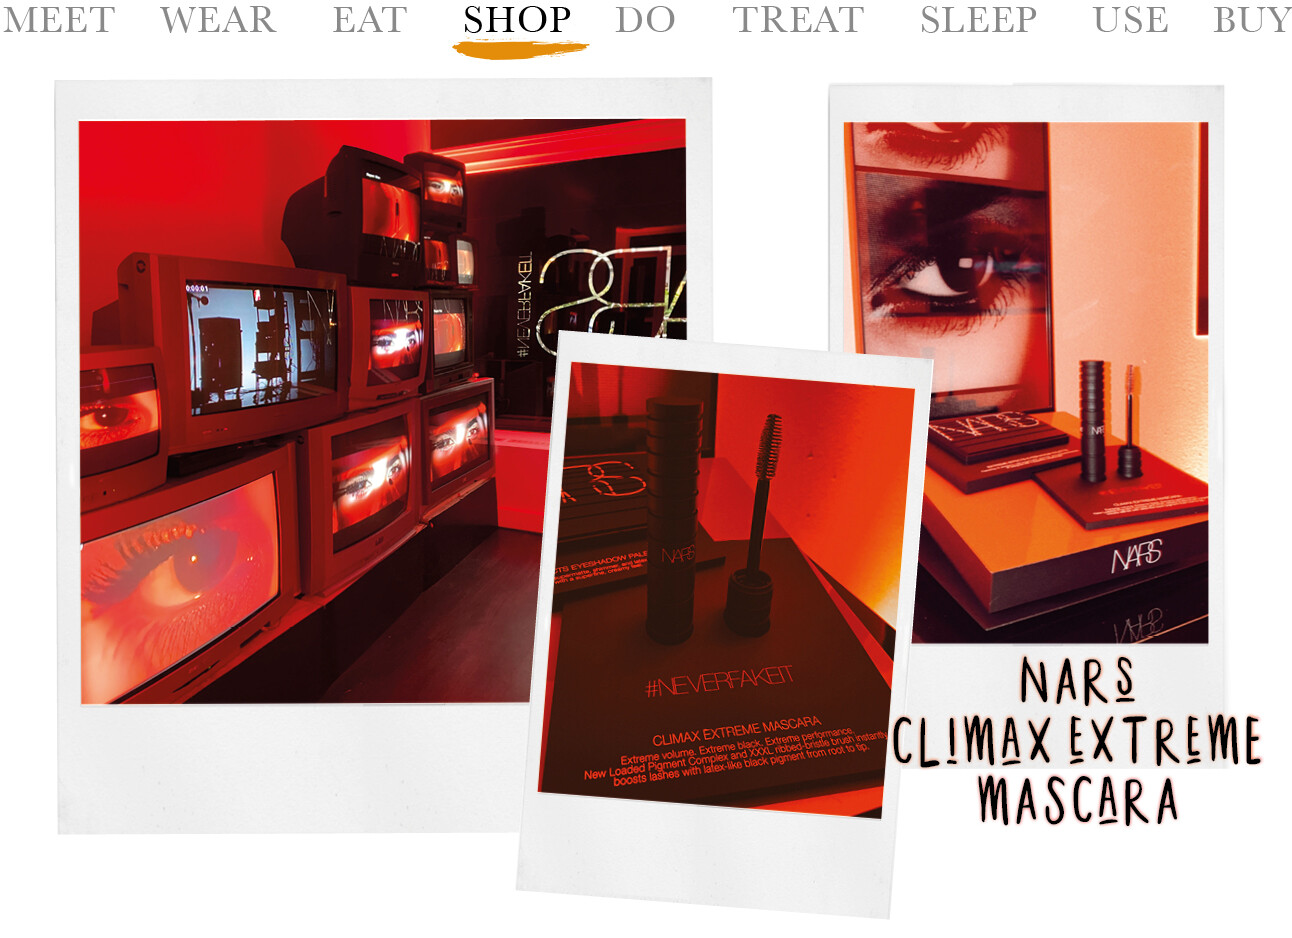 Today we shop: Nars Extreme Climax mascara